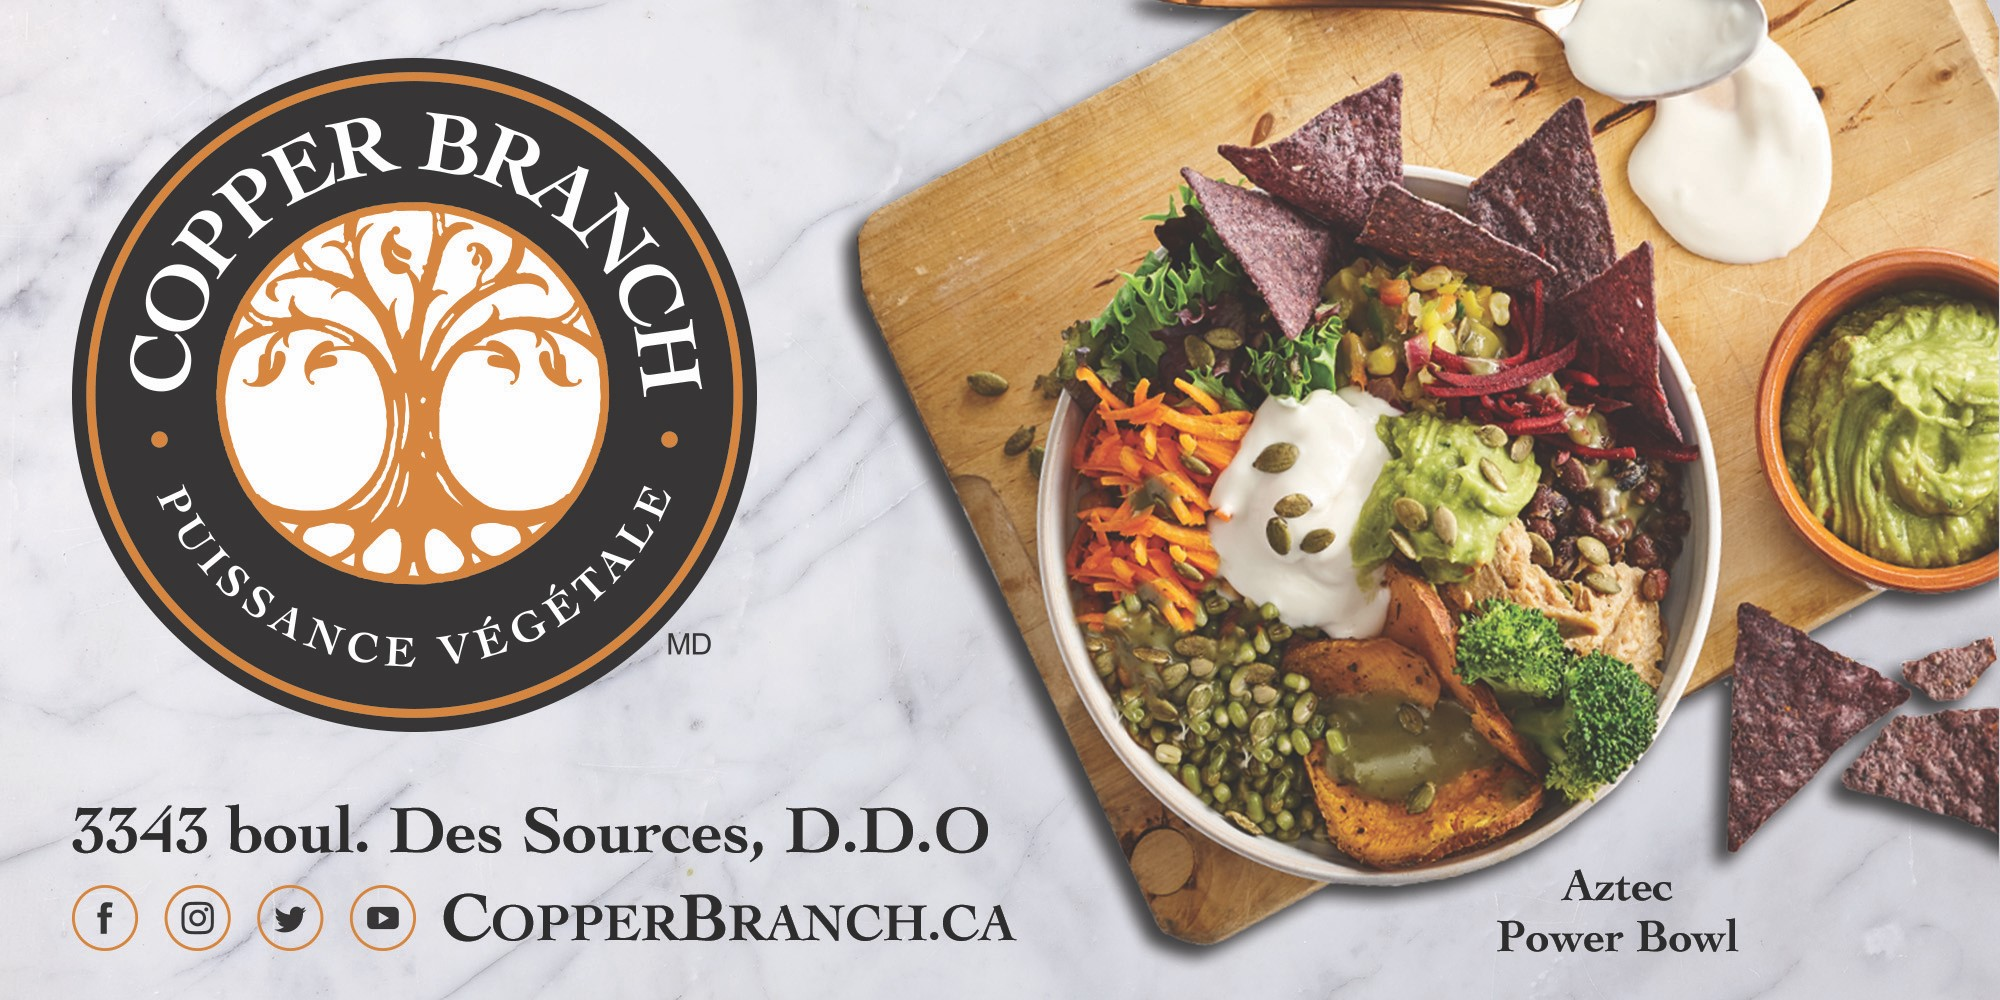 Copper Branch | Dollard-des-Ormeaux